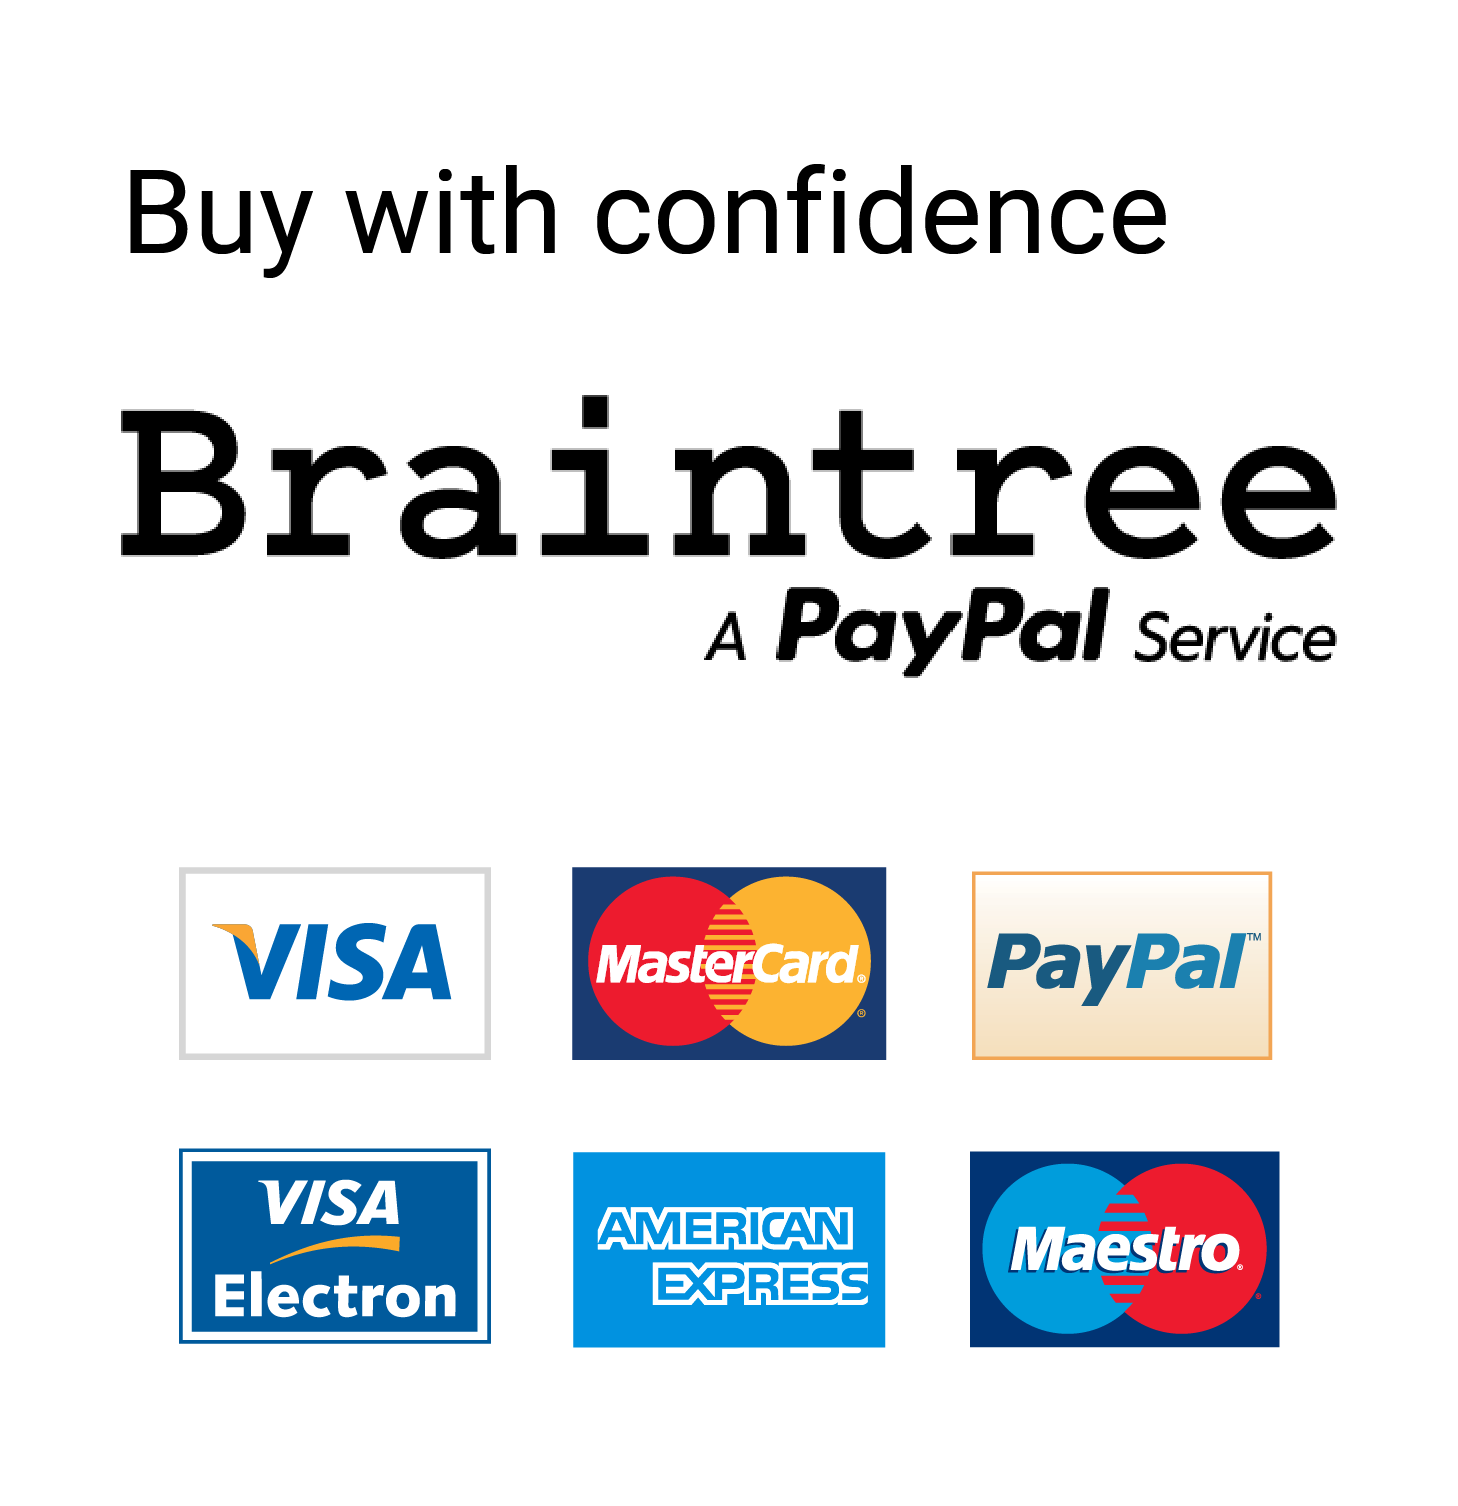 Buy with confidence with Braintree